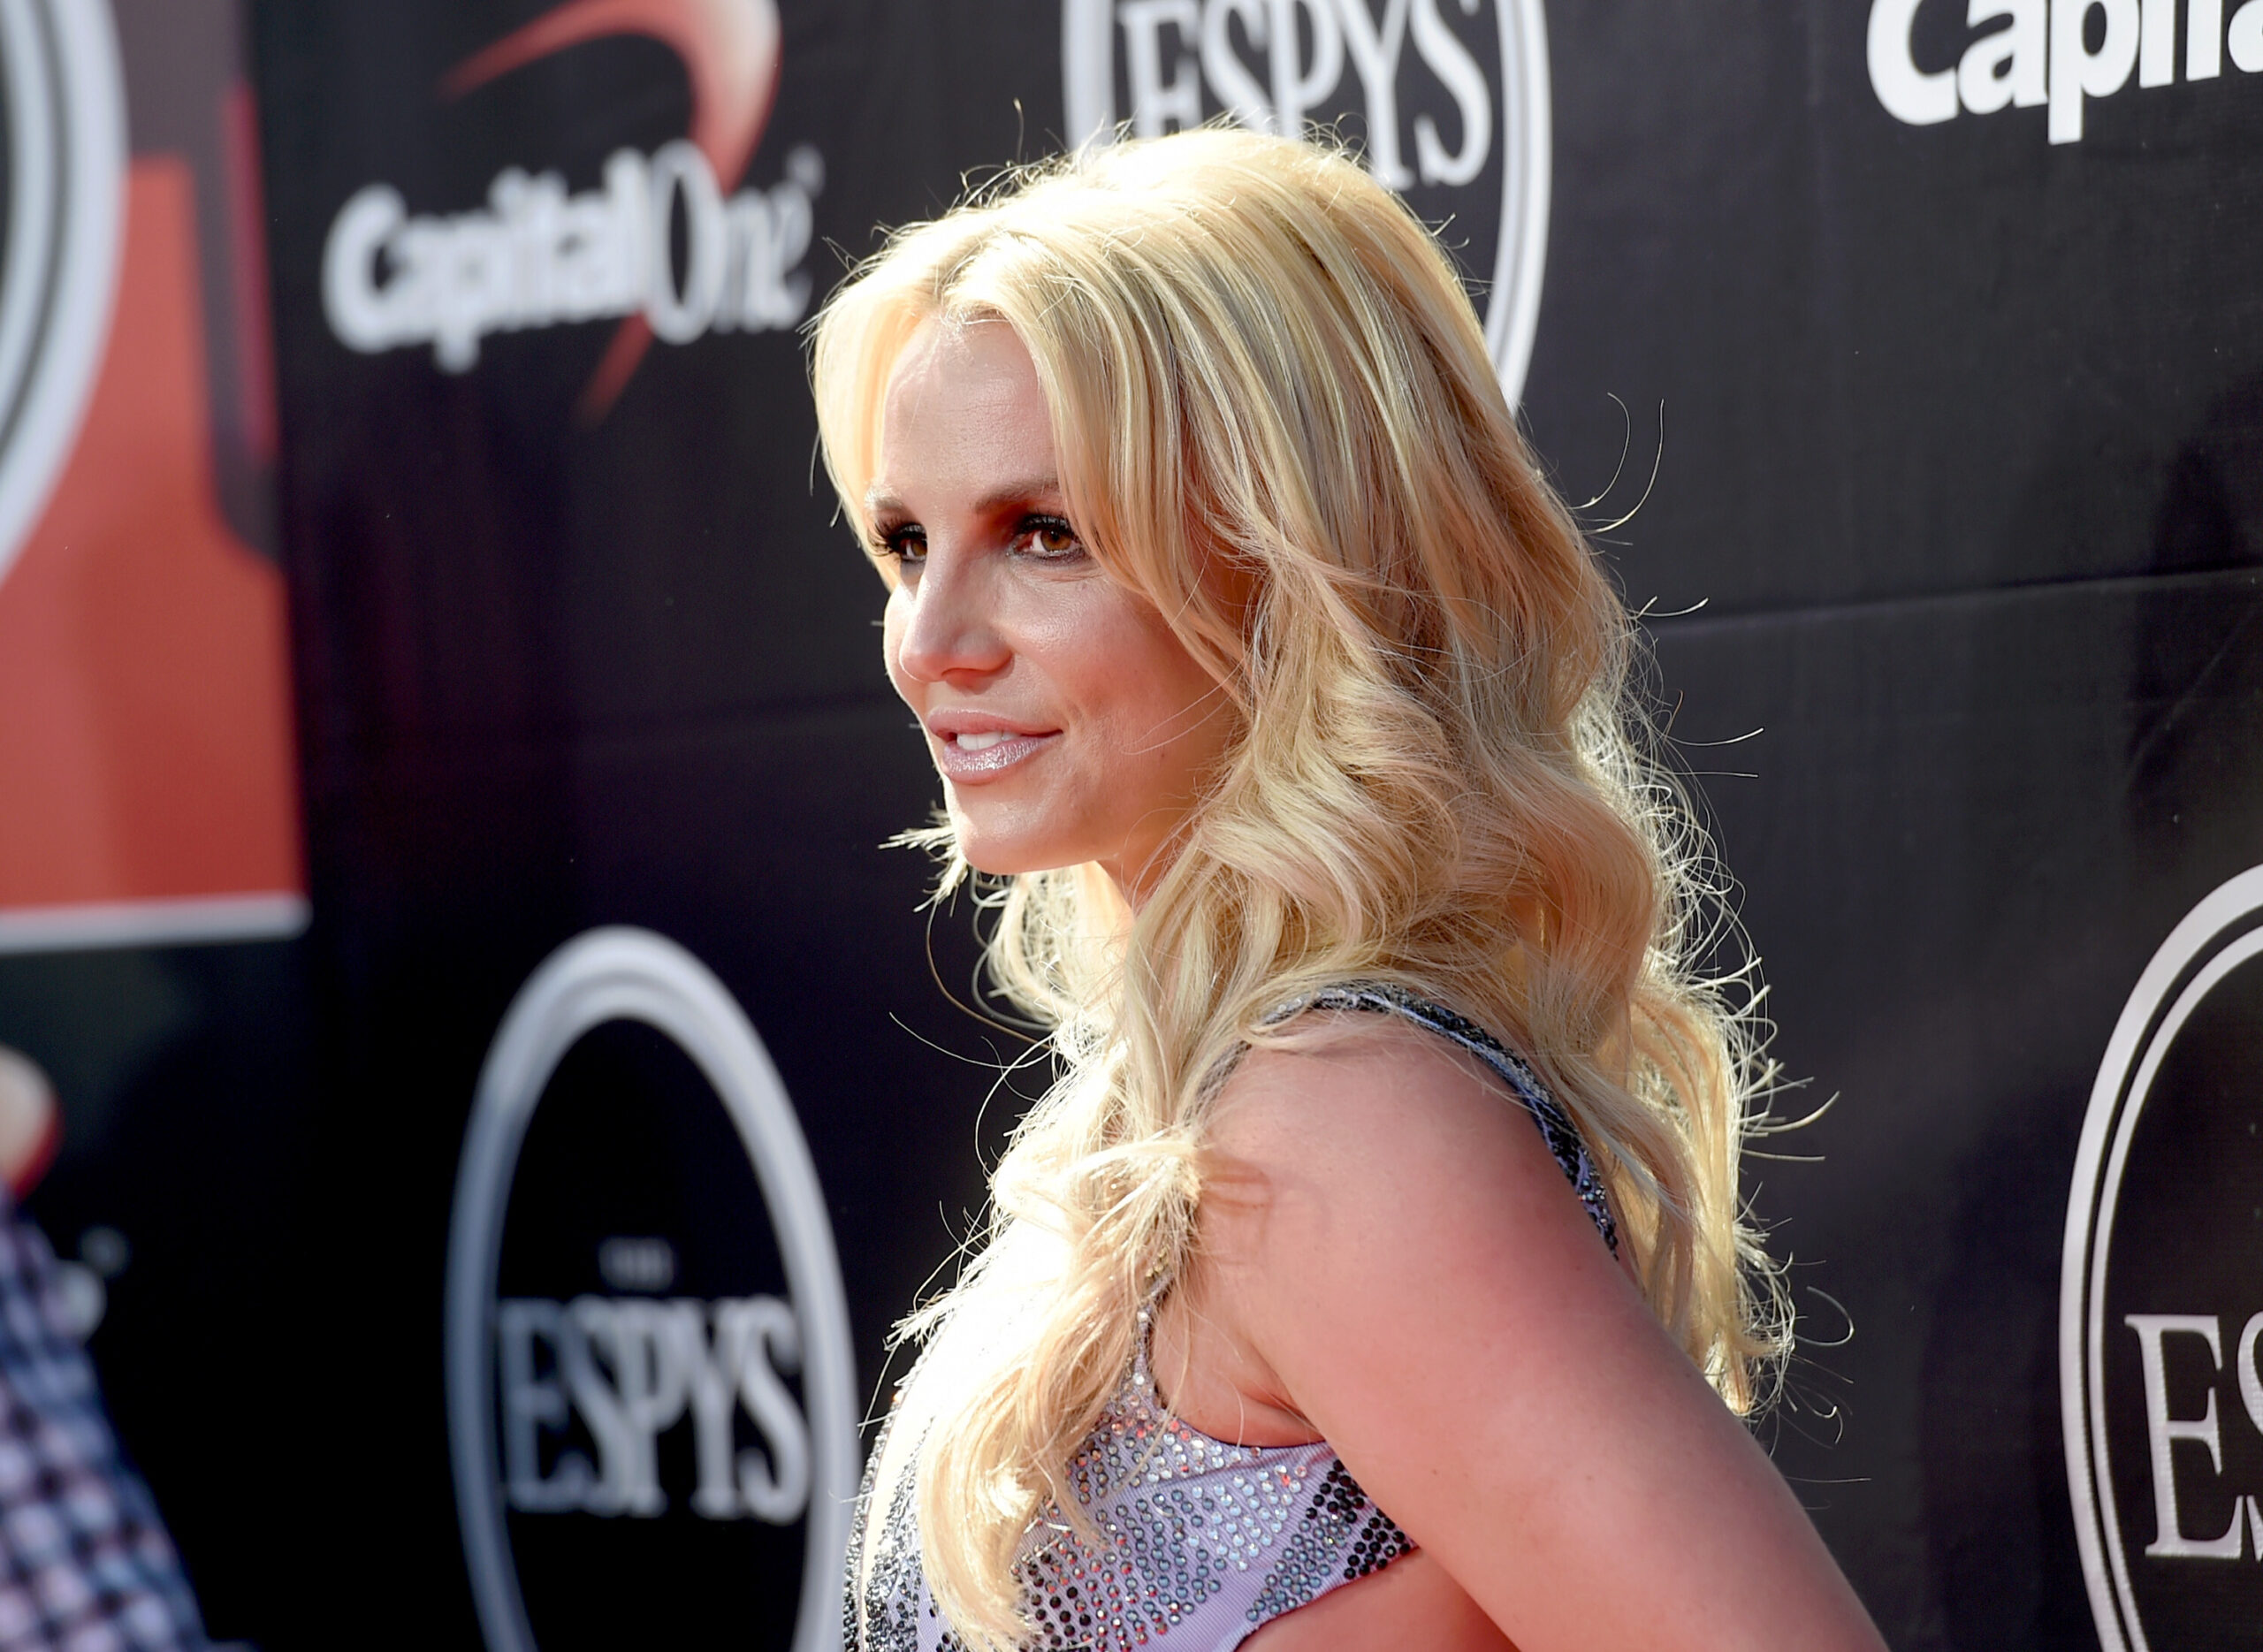 <i>Jason Merritt/TERM/Getty Images North America/Getty Images</i><br/>A source close to the singer Britney Spears